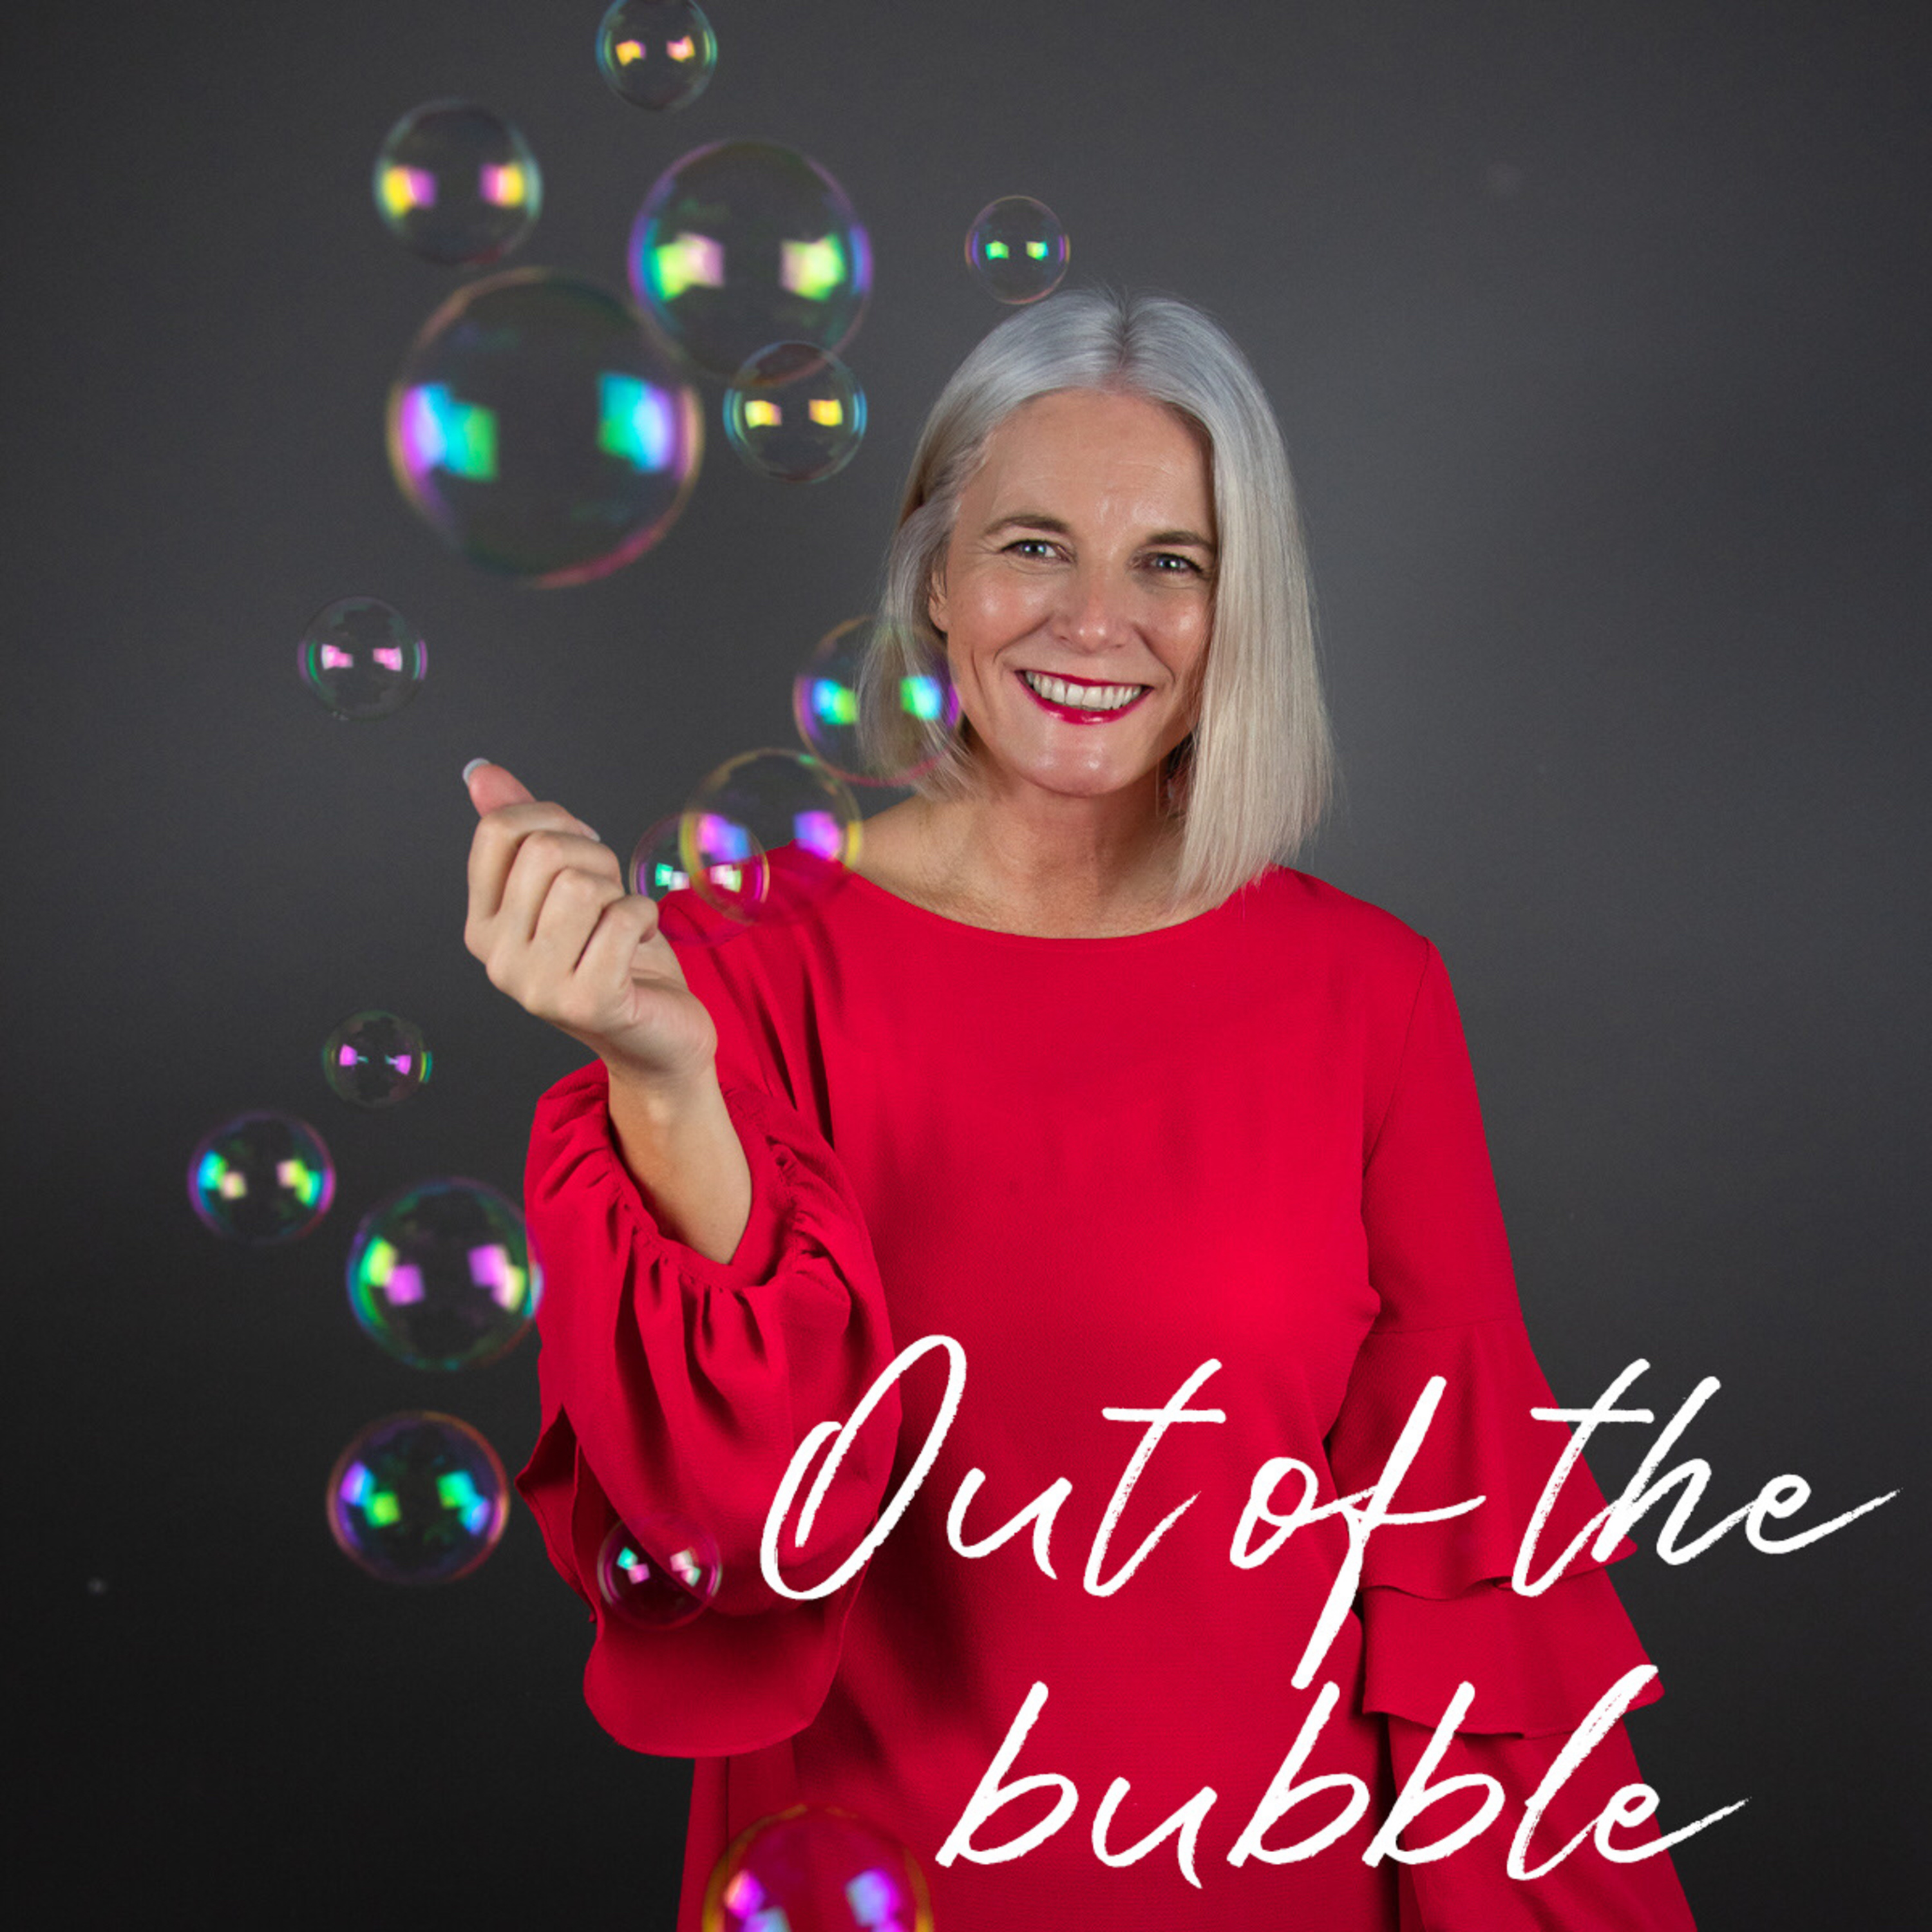 Episode 6 Out Of The Bubble with Jacynth Bassett, founder of The-bias-cut.com